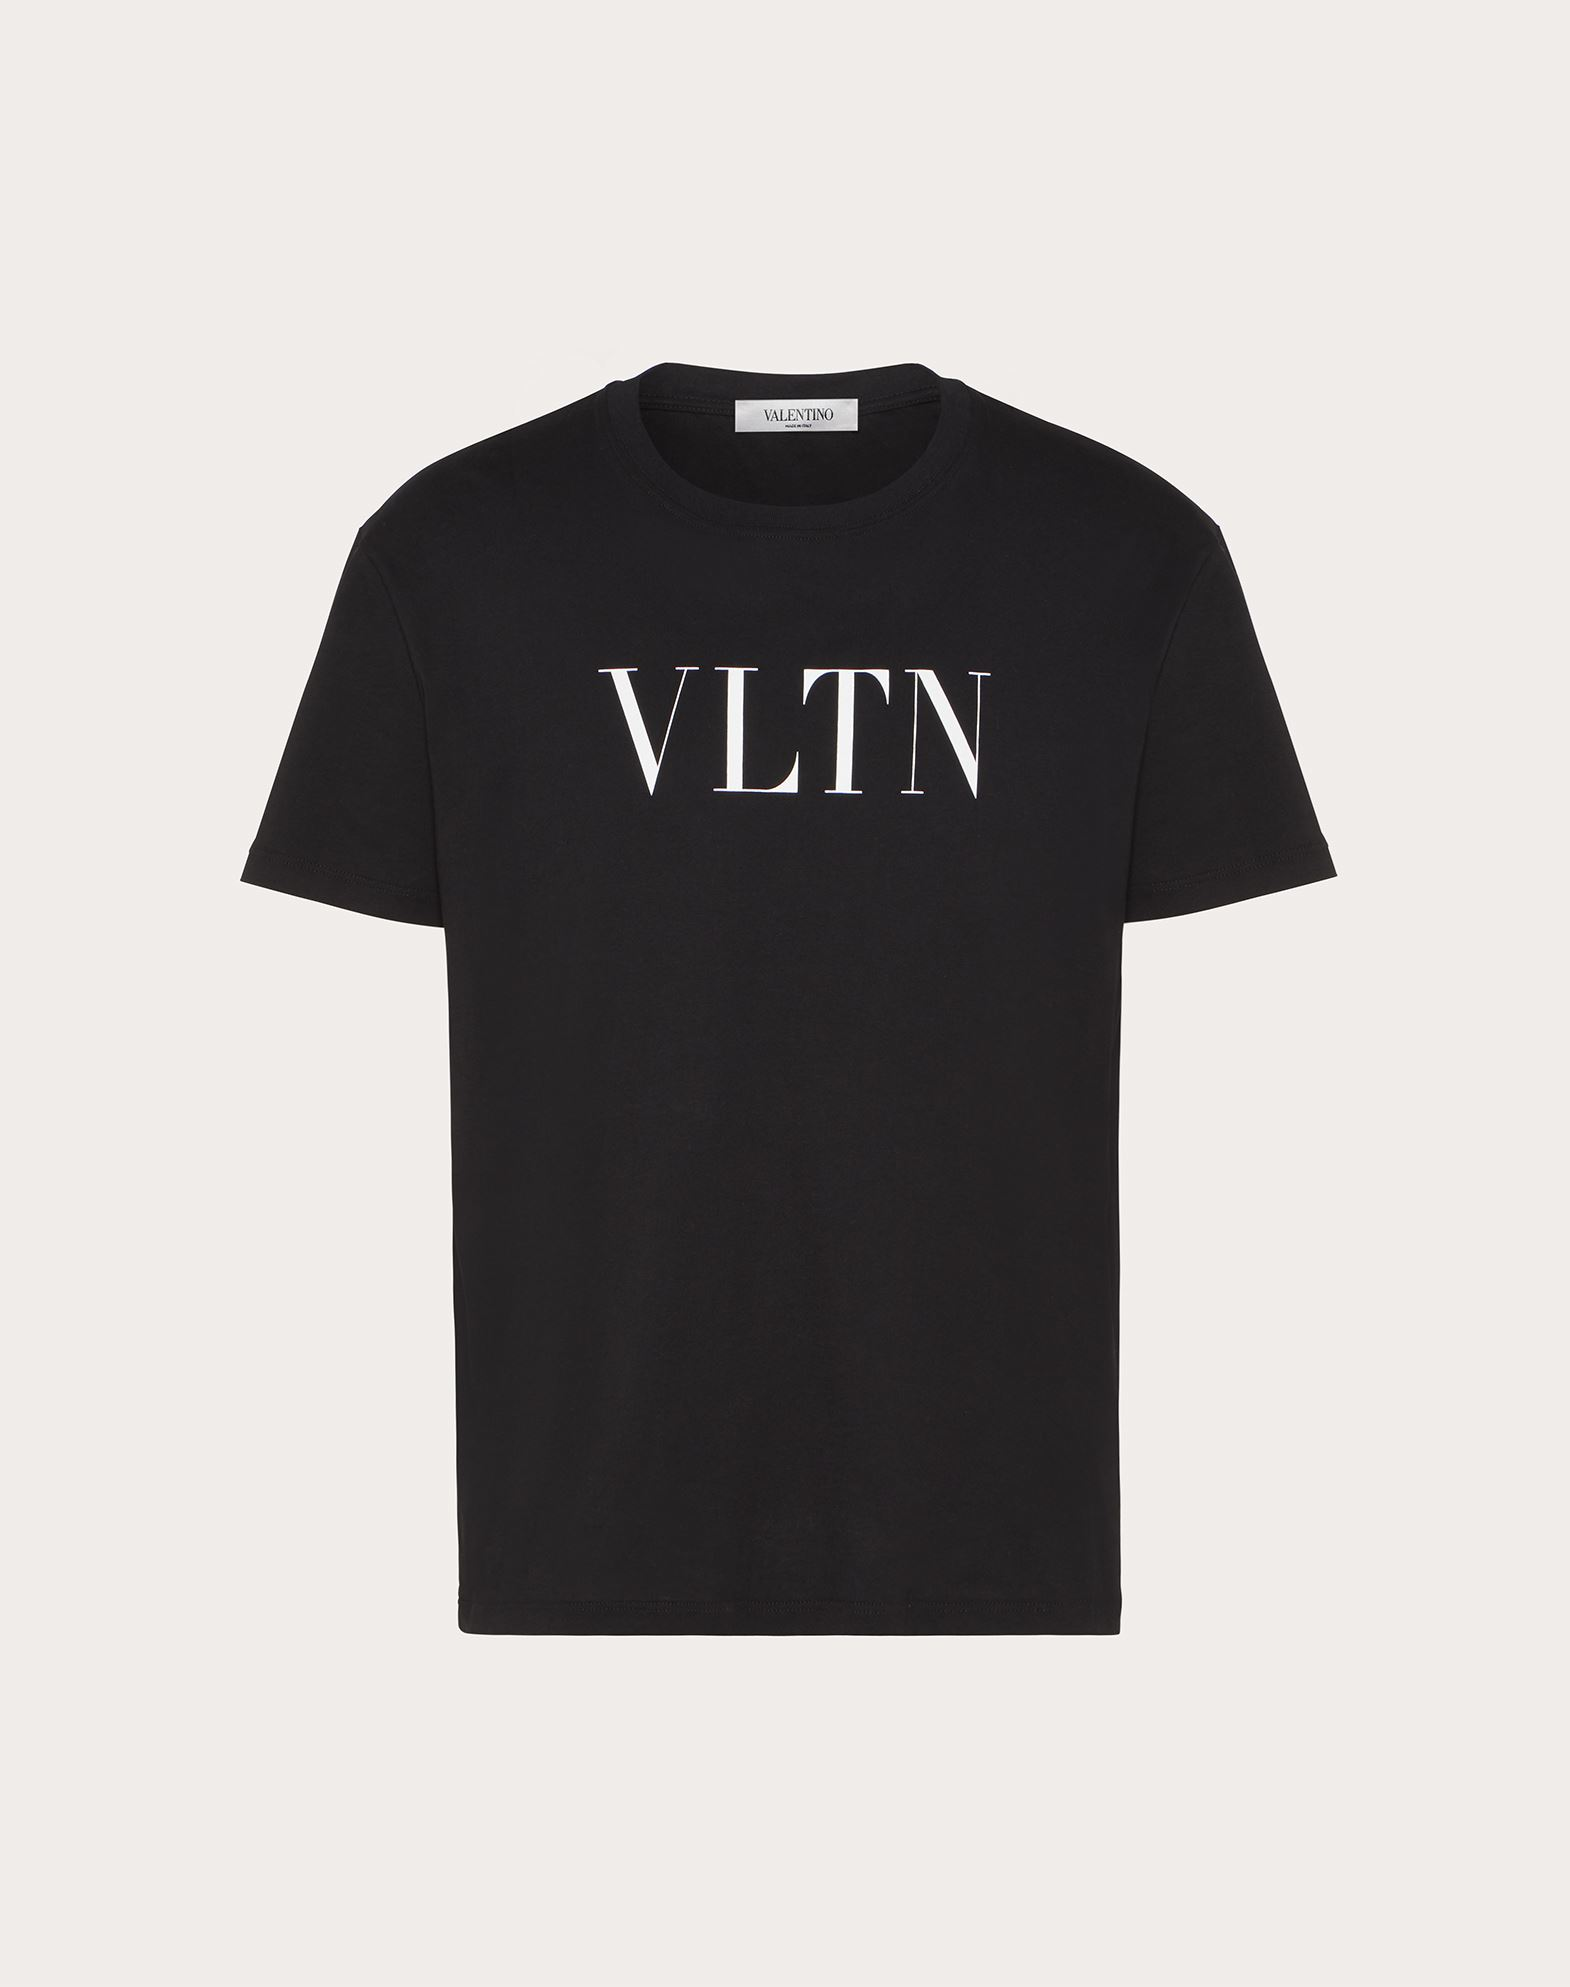 VALENTINO Jersey Solid colour Round collar Logo Print Short sleeves  12103795gw